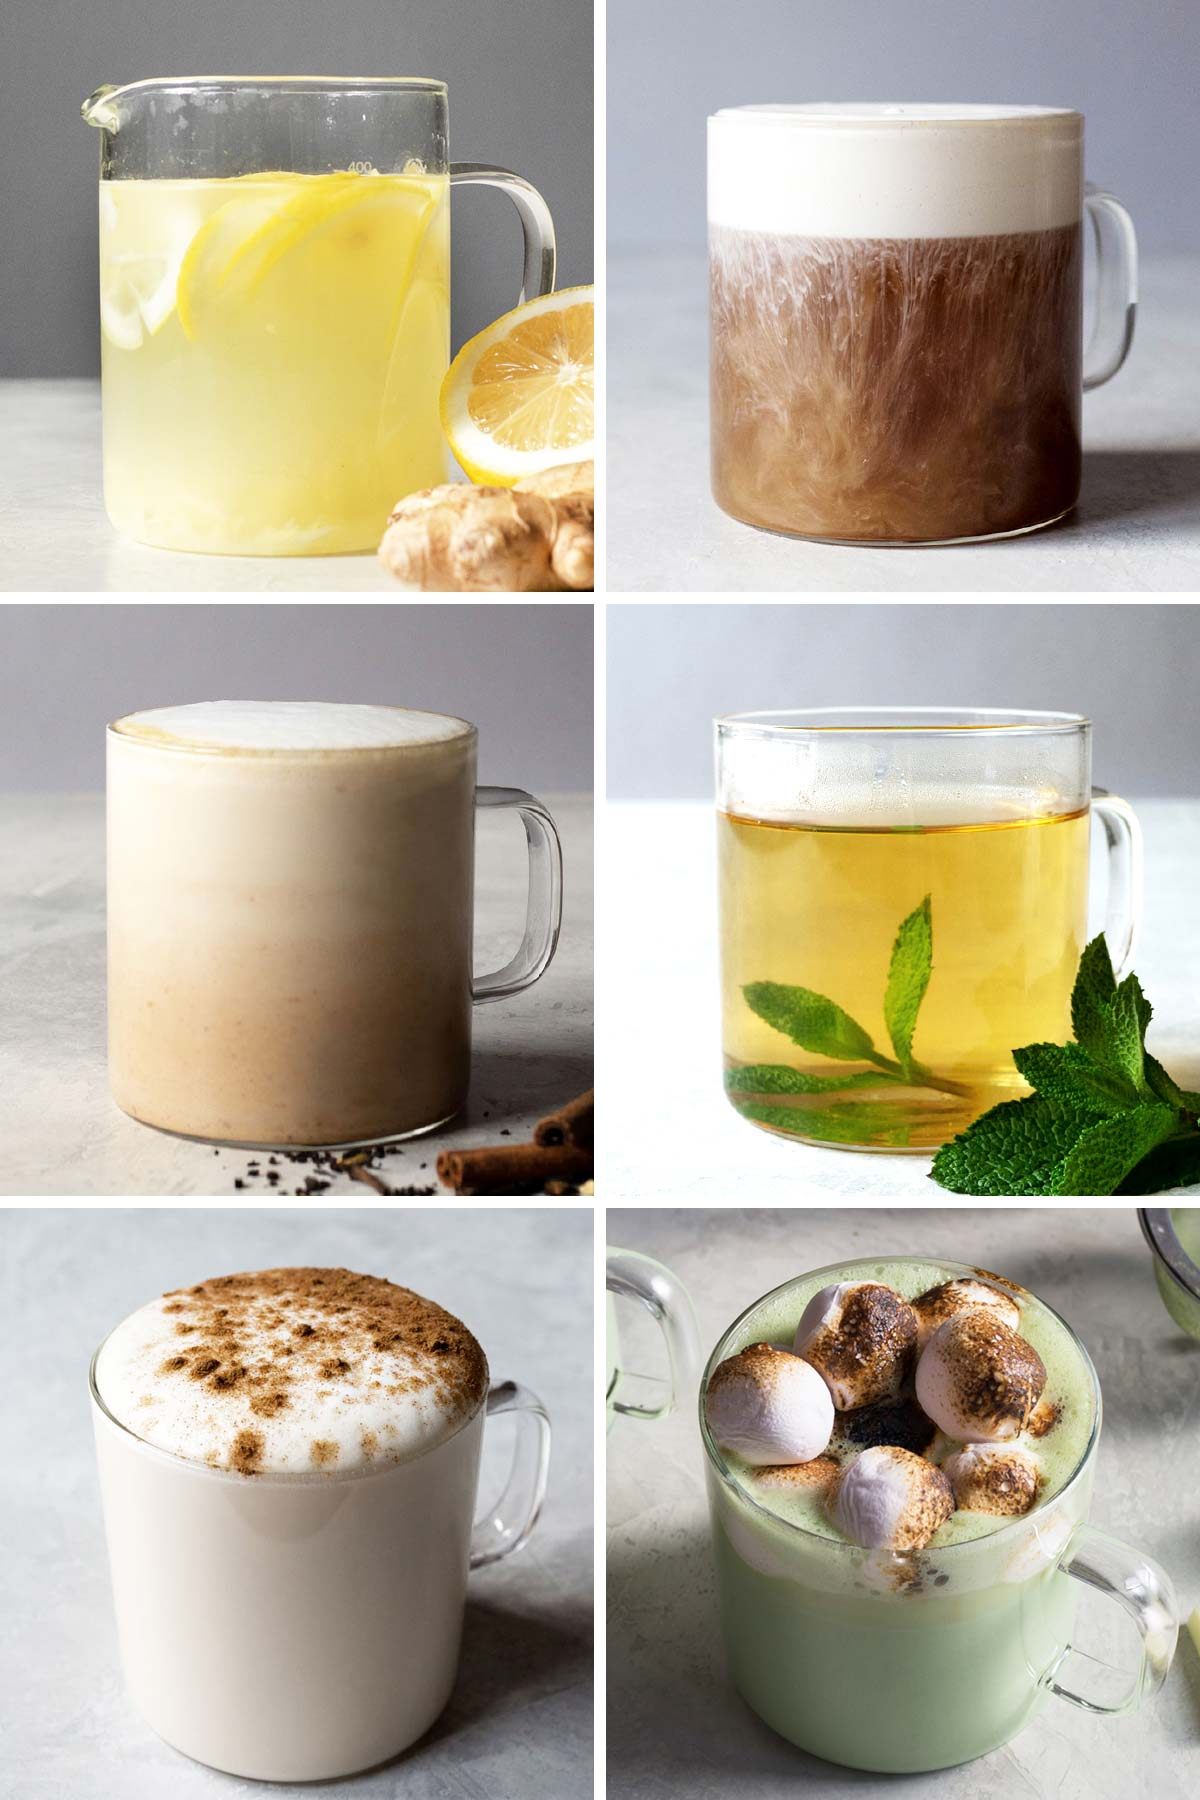 Six photo collage showing different tea beverages.